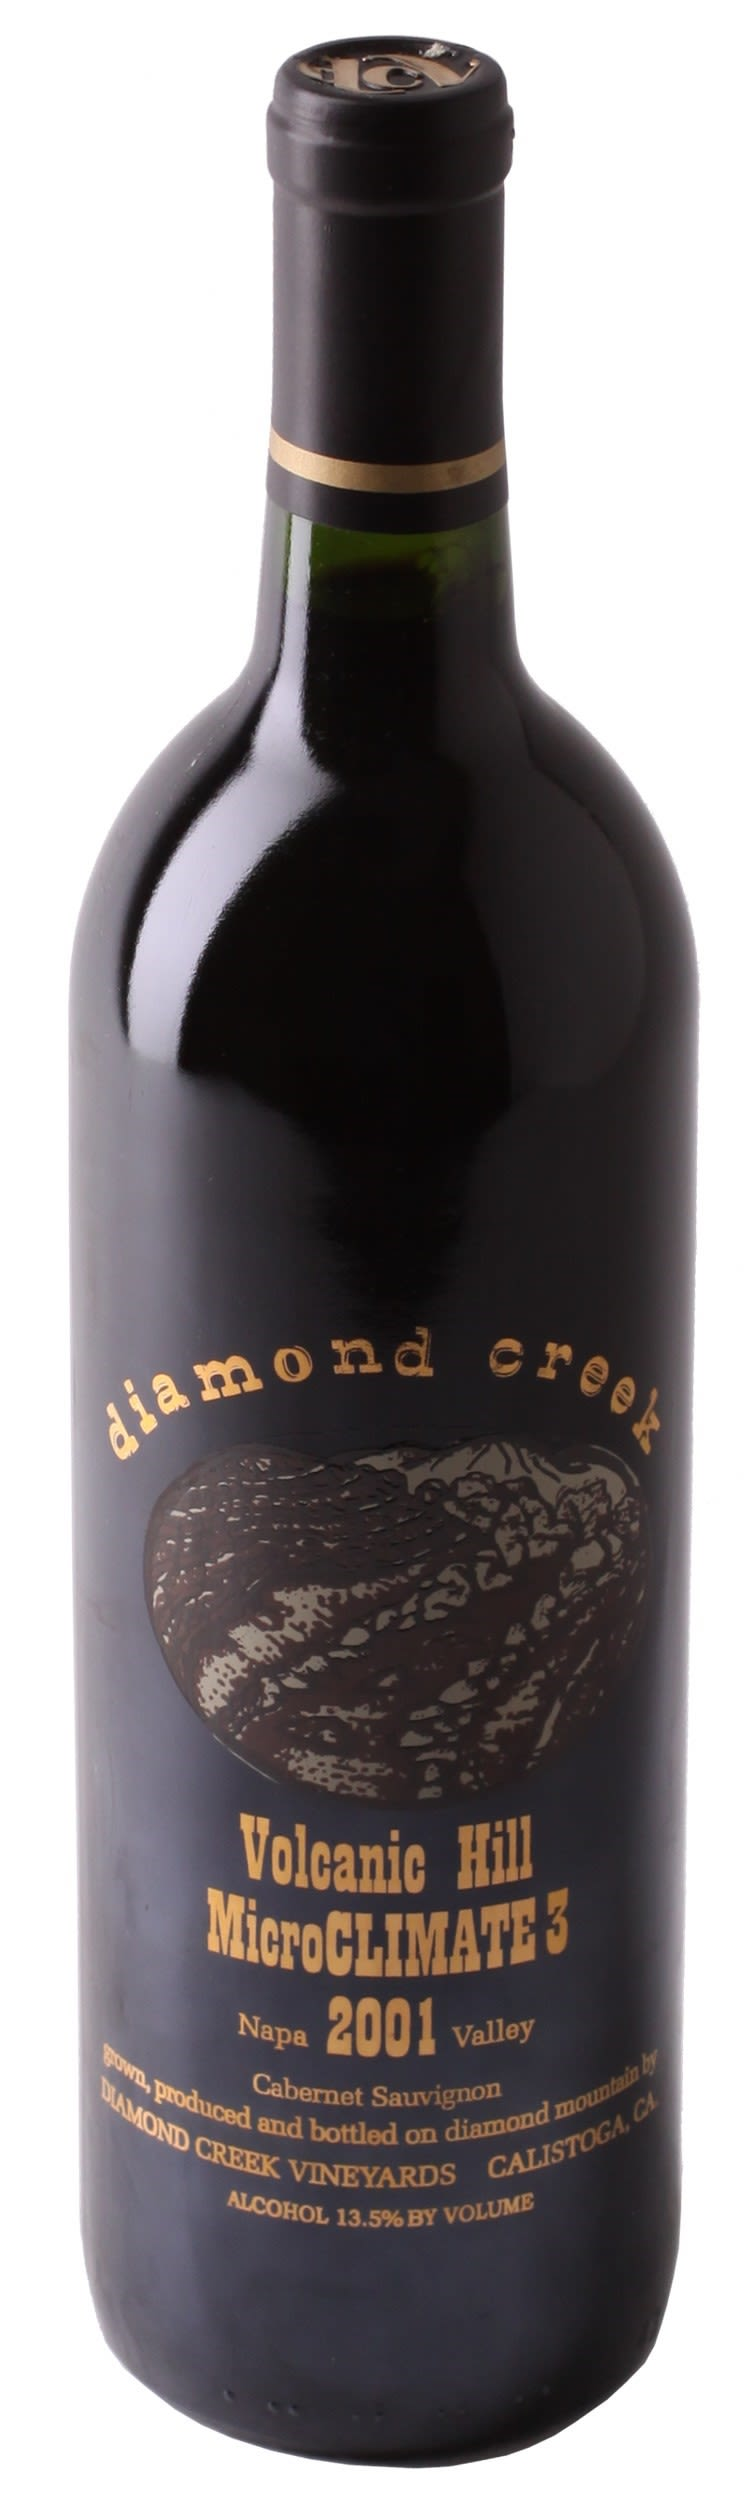 Diamond Creek Microclimate 3 Volcanic Hill Cabernet Sauvignon 2001  Front Bottle Shot